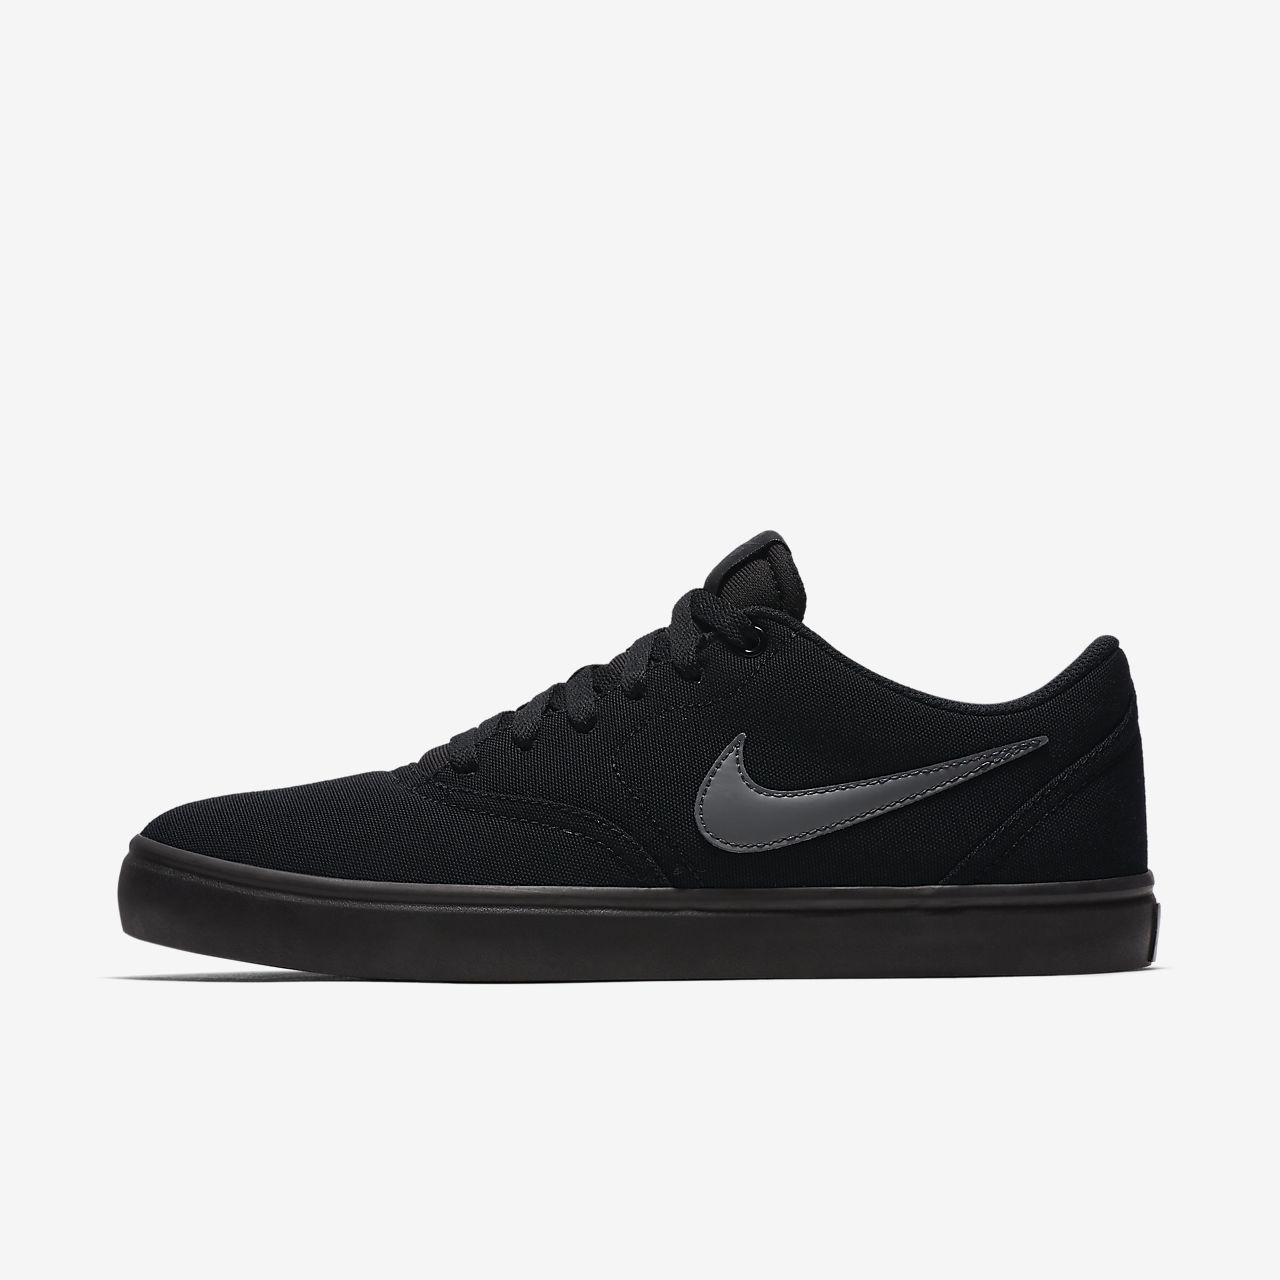 info for b927b fa011 ... Calzado de skateboarding para hombre Nike SB Check Solarsoft Canvas